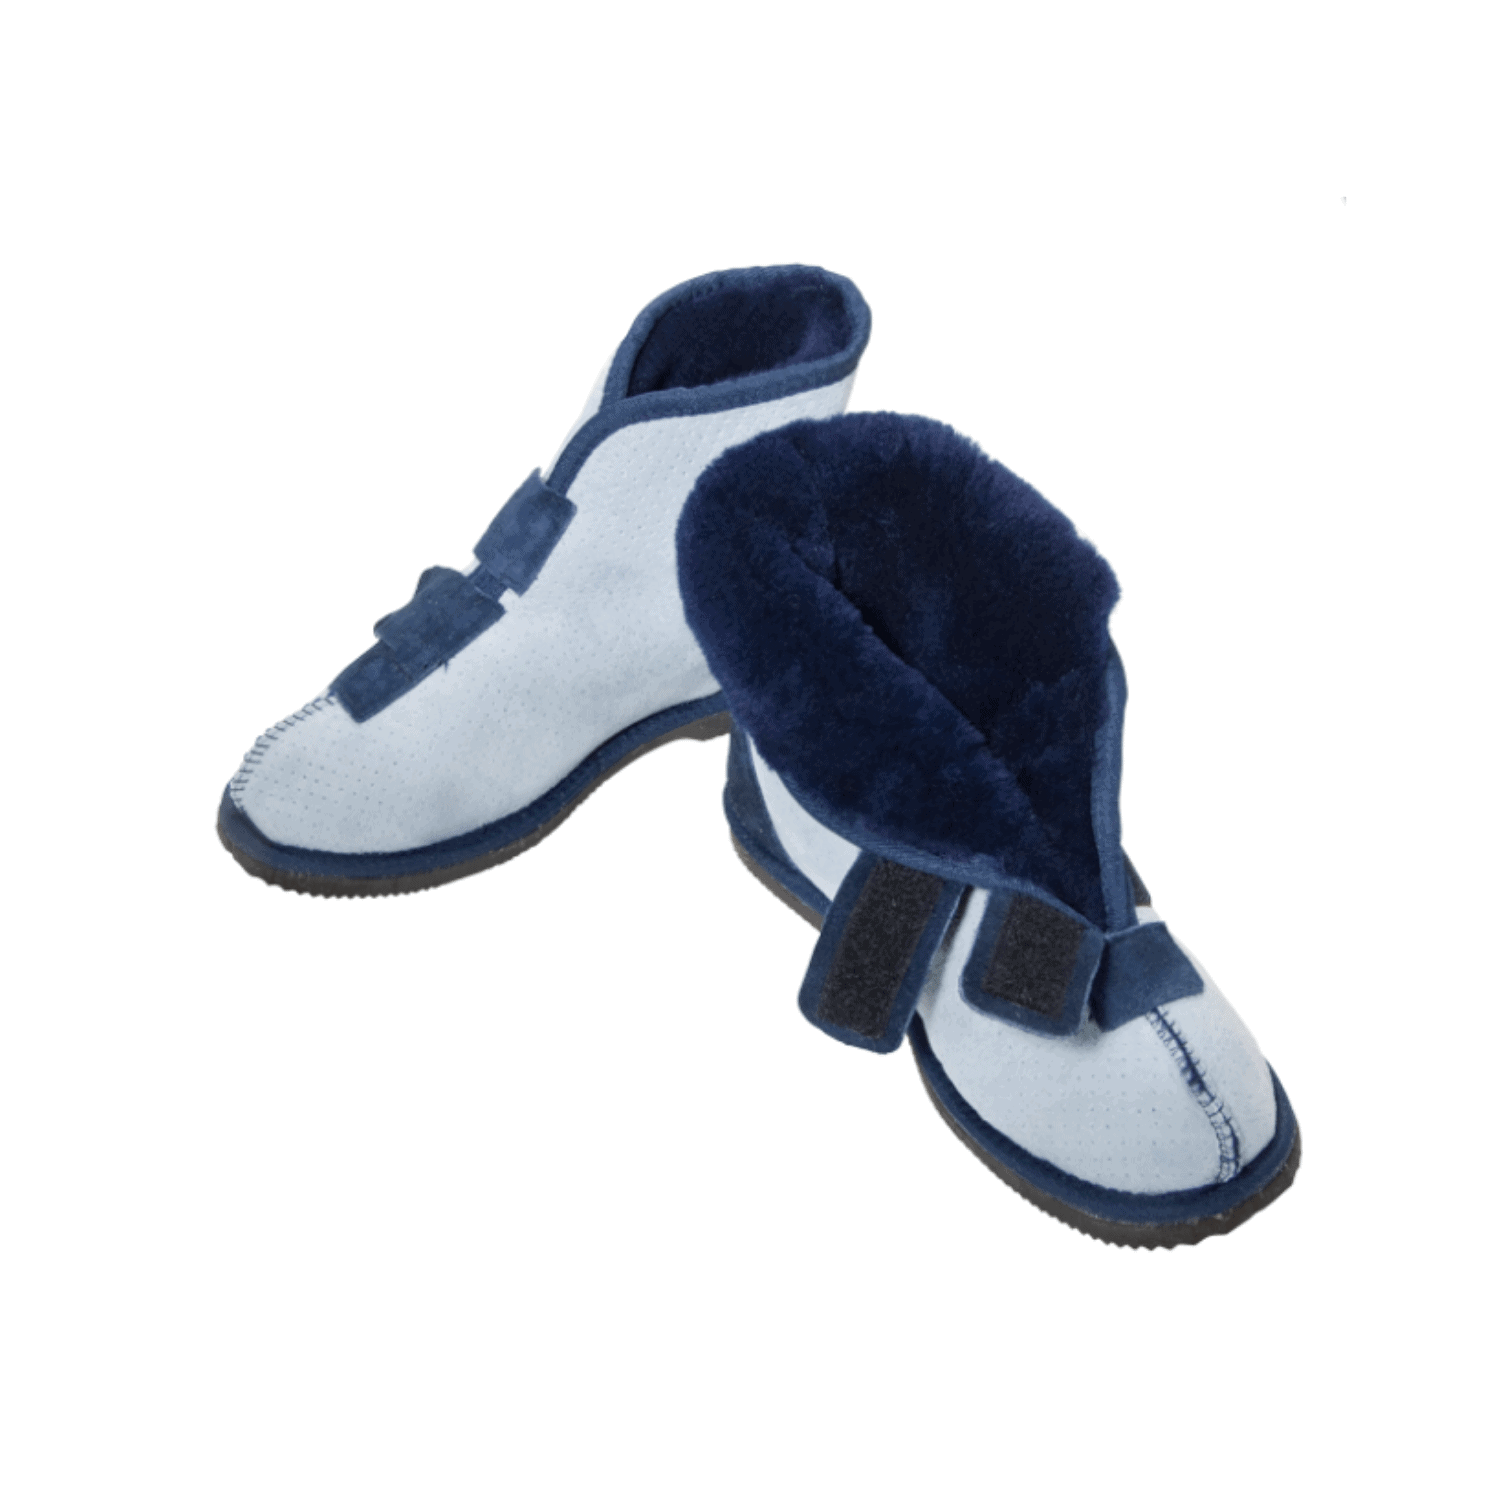 Shear Comfort DiabPro – The Diabetic Protection Boot